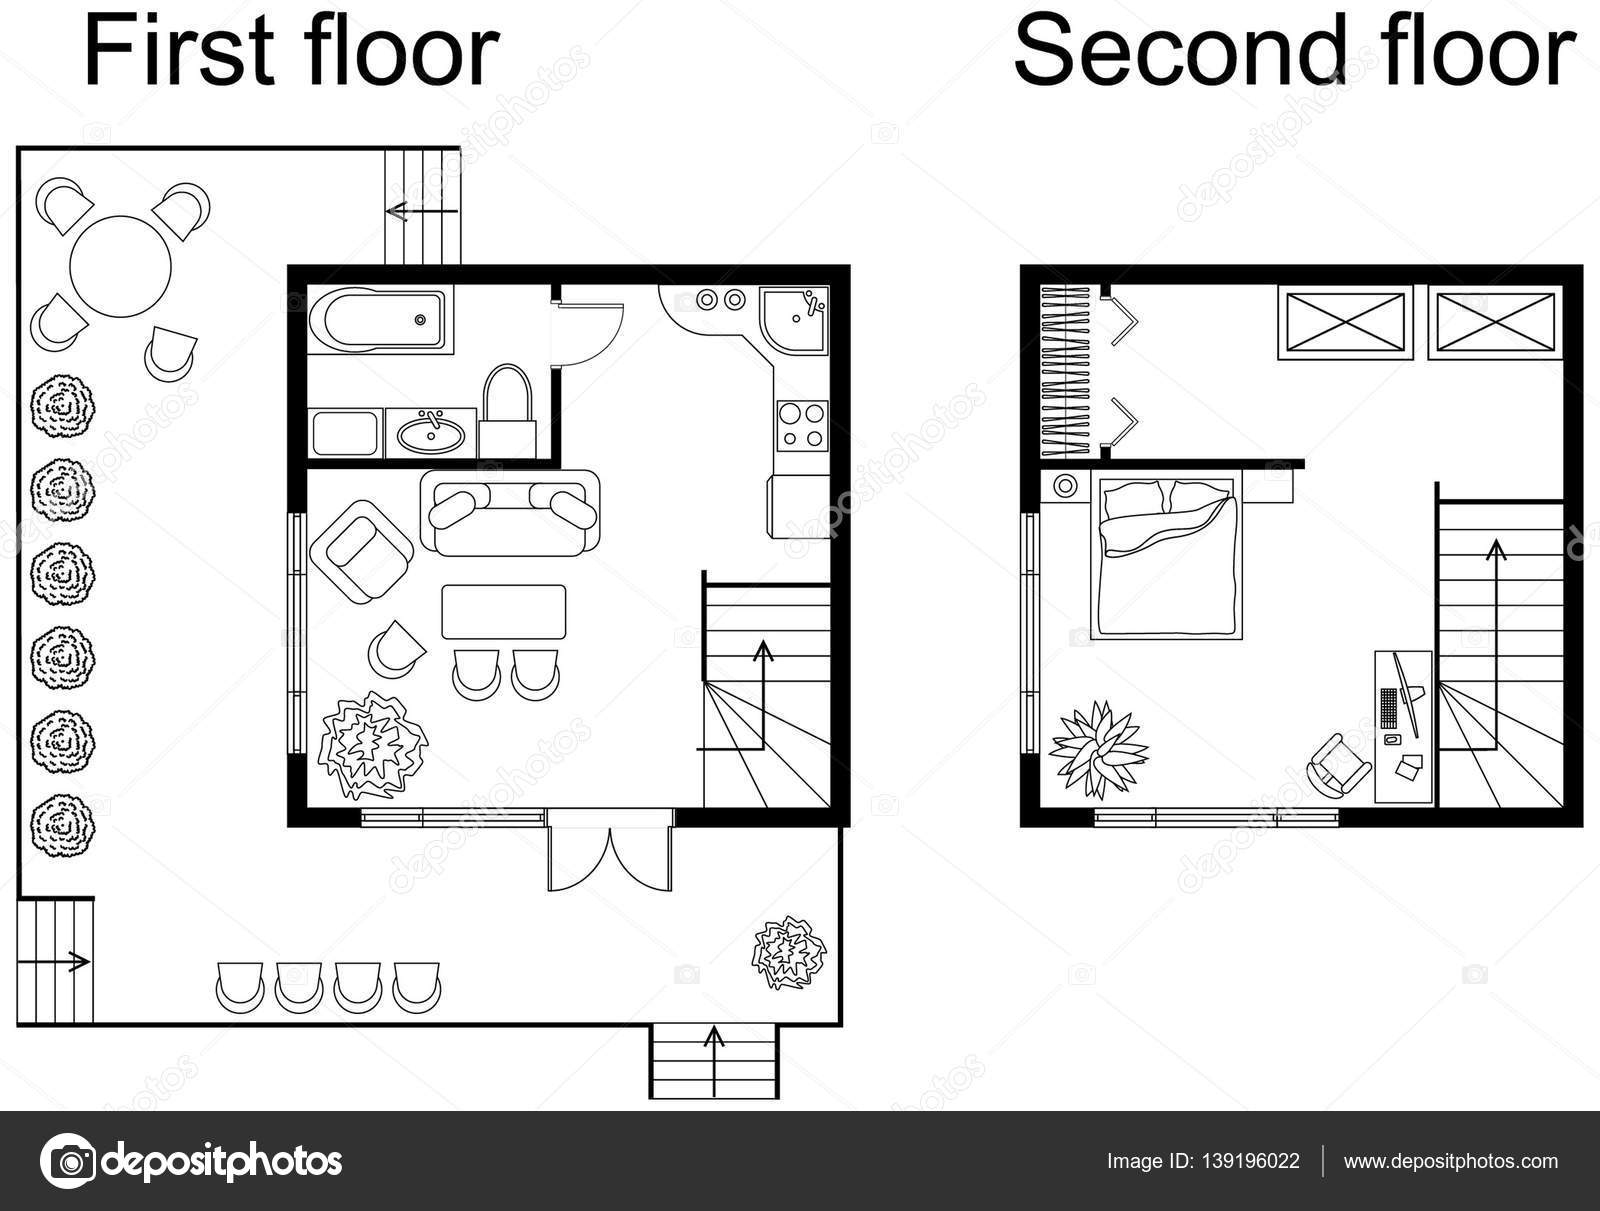 architectural plan of a double decker house stock vector black and white architectural plan of a double decker small house apartment with furniture in drawing view with kitchen and bathroom living room and